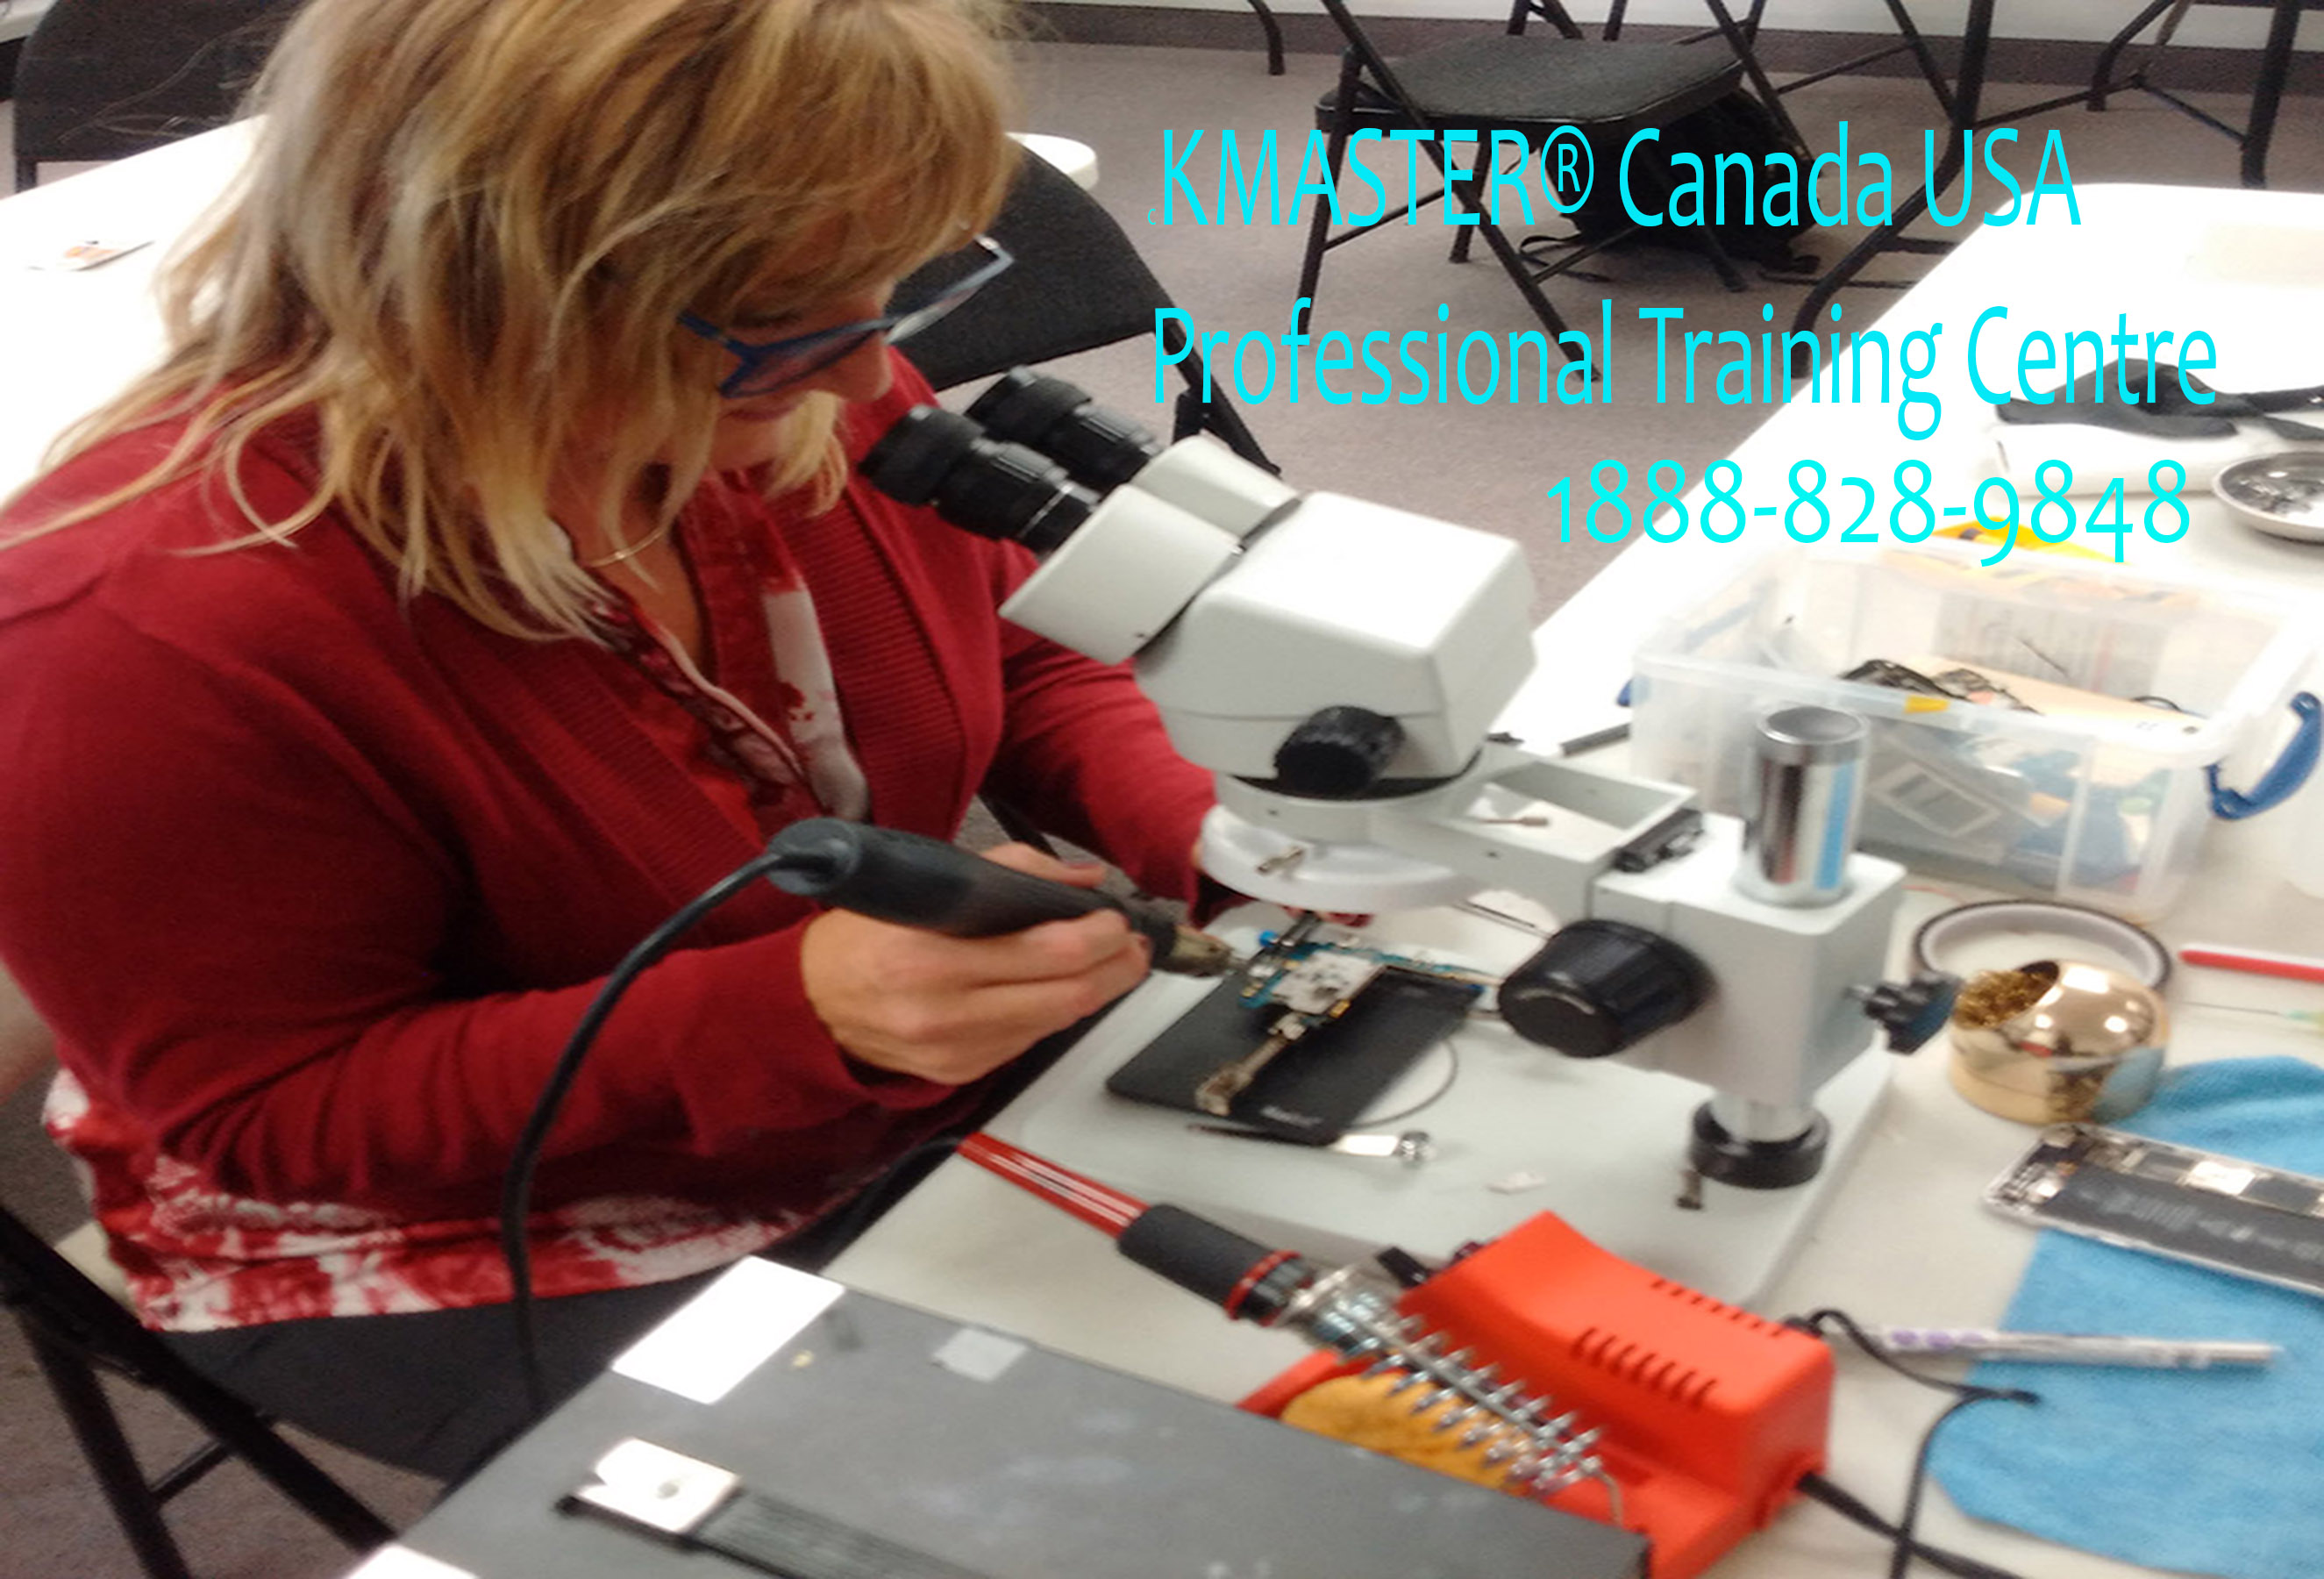 CELL PHONE REPAIR COURSE CERTIFICATION NEAR YOU TORONTO VANCOUVER CALGARY OTTAWA MONTREAL HALIFAX CALGARY EDMONTON WINNIPEG CANADA USA UAE AUSTRAILIA